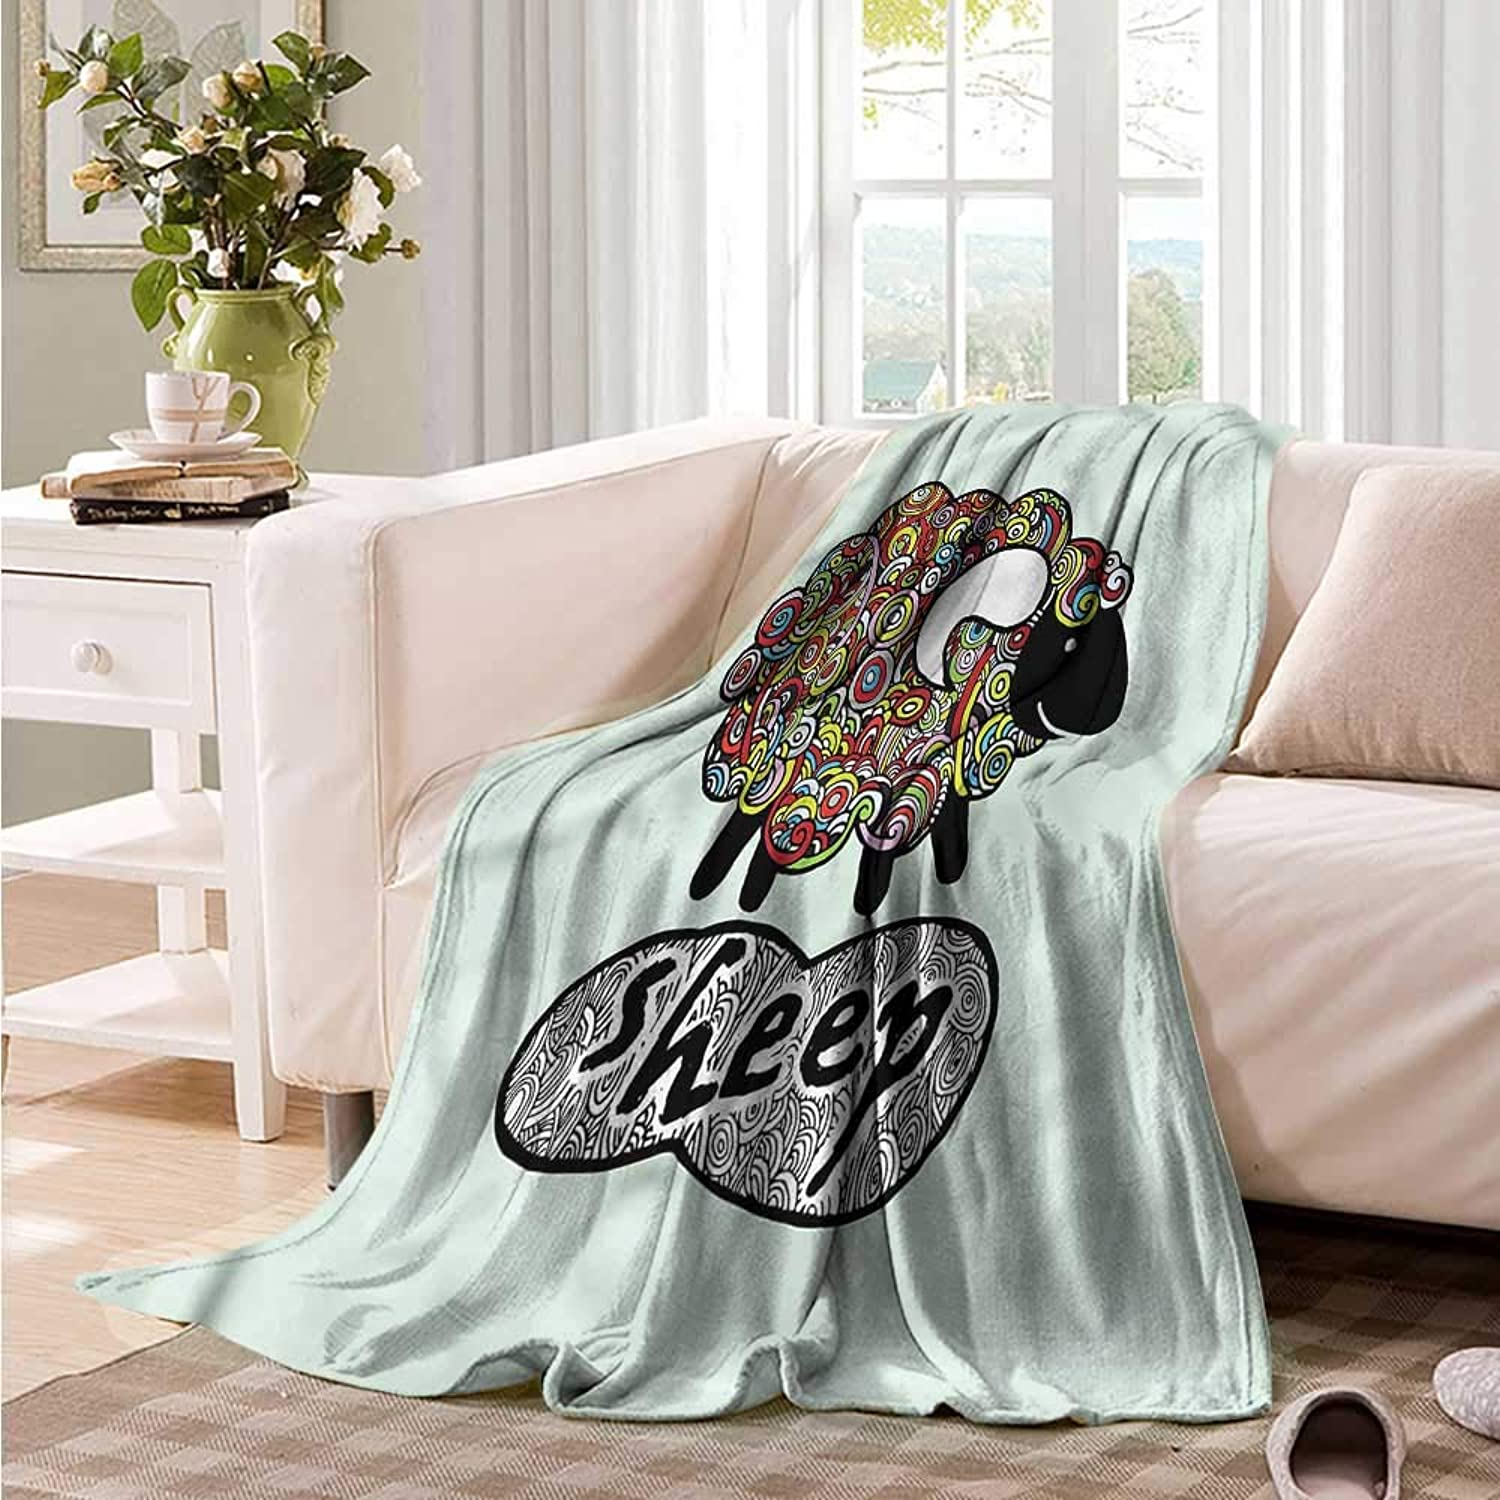 Oncegod Flannel Blanket Indie Hipster Doodle Fun Sheep Camping Throw,Office wrap 60  W x 51  L